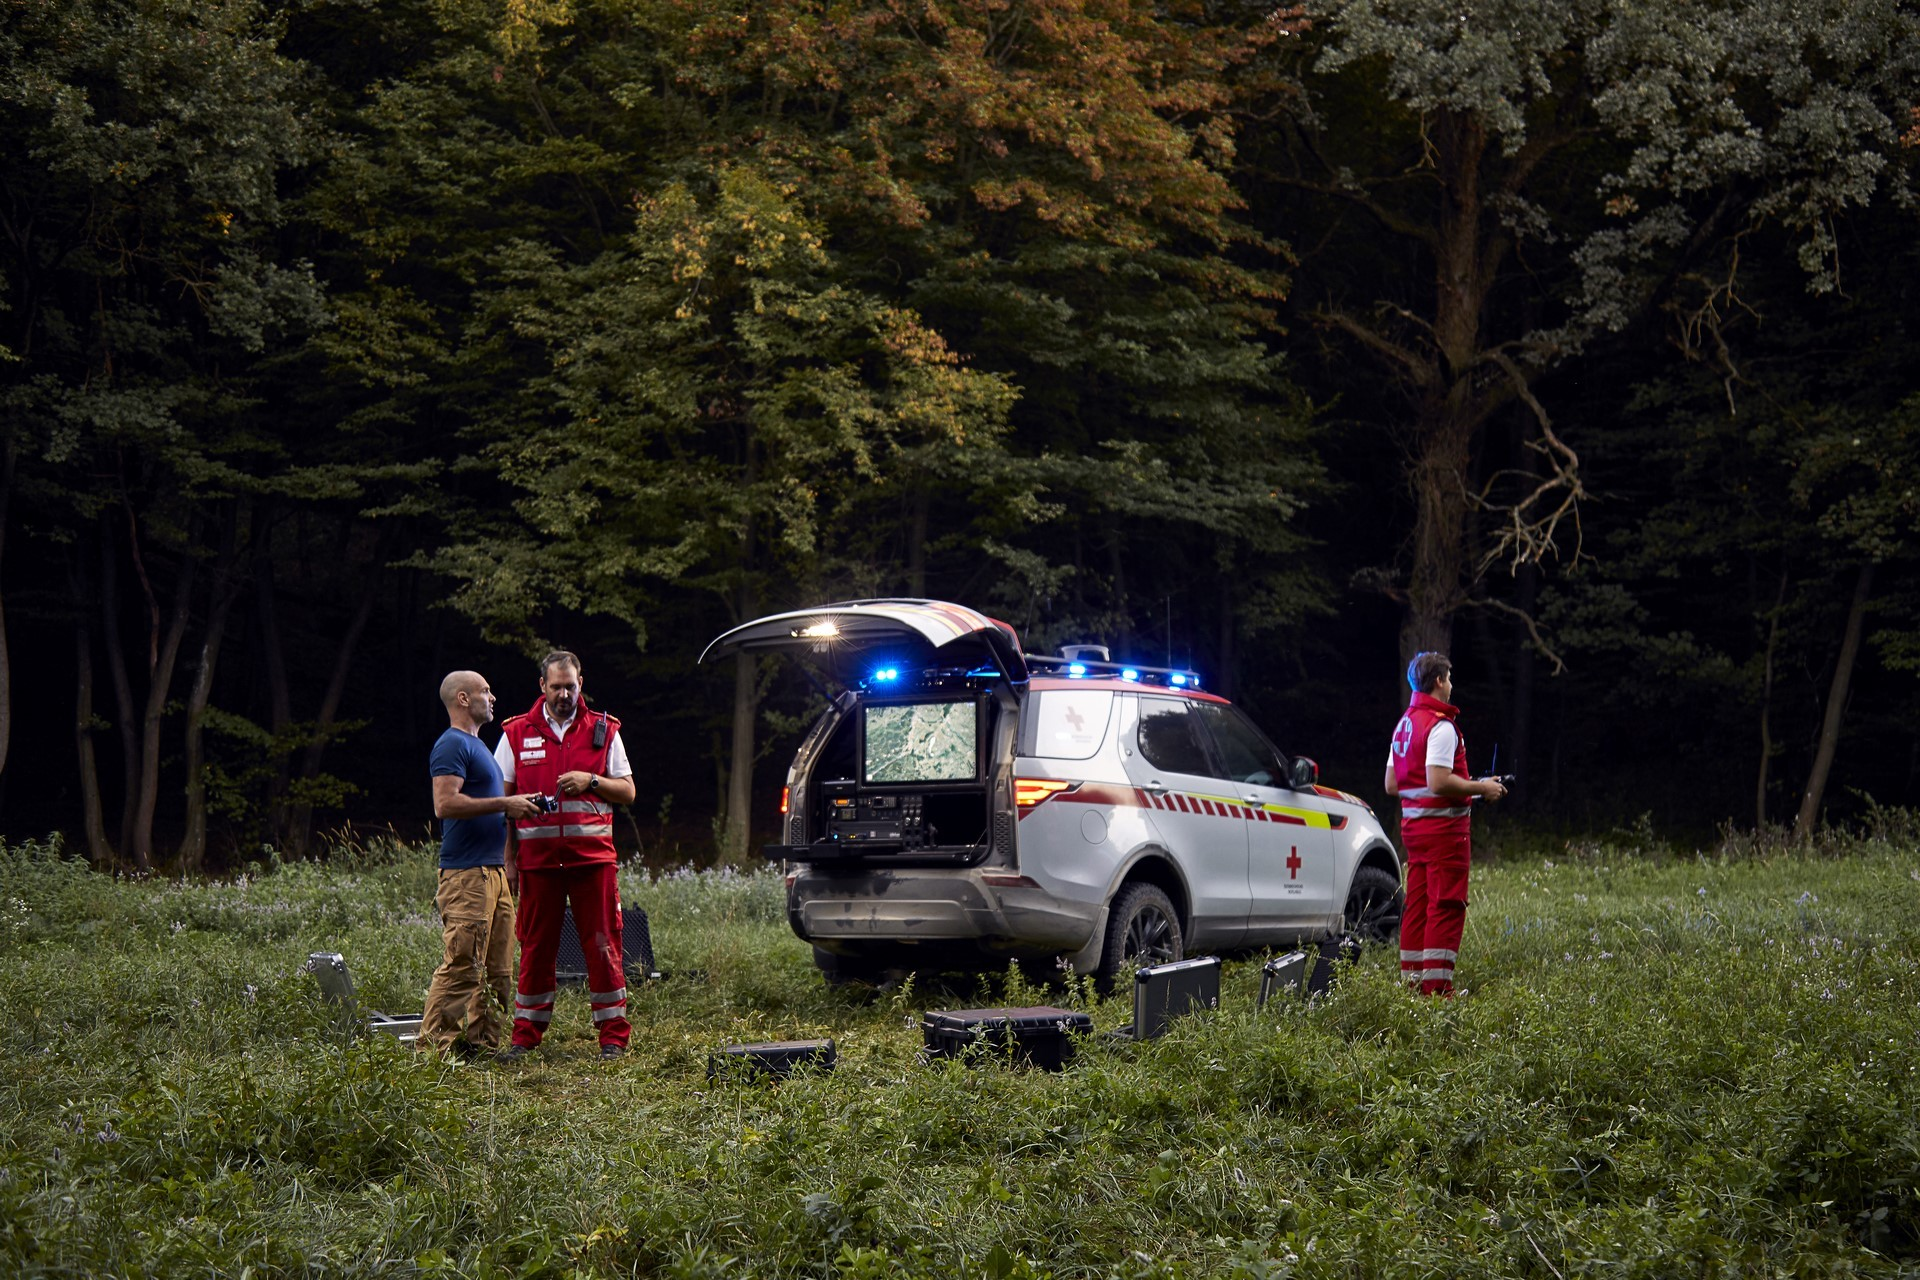 Land Rover Discovery Emergency Vehicle (52)